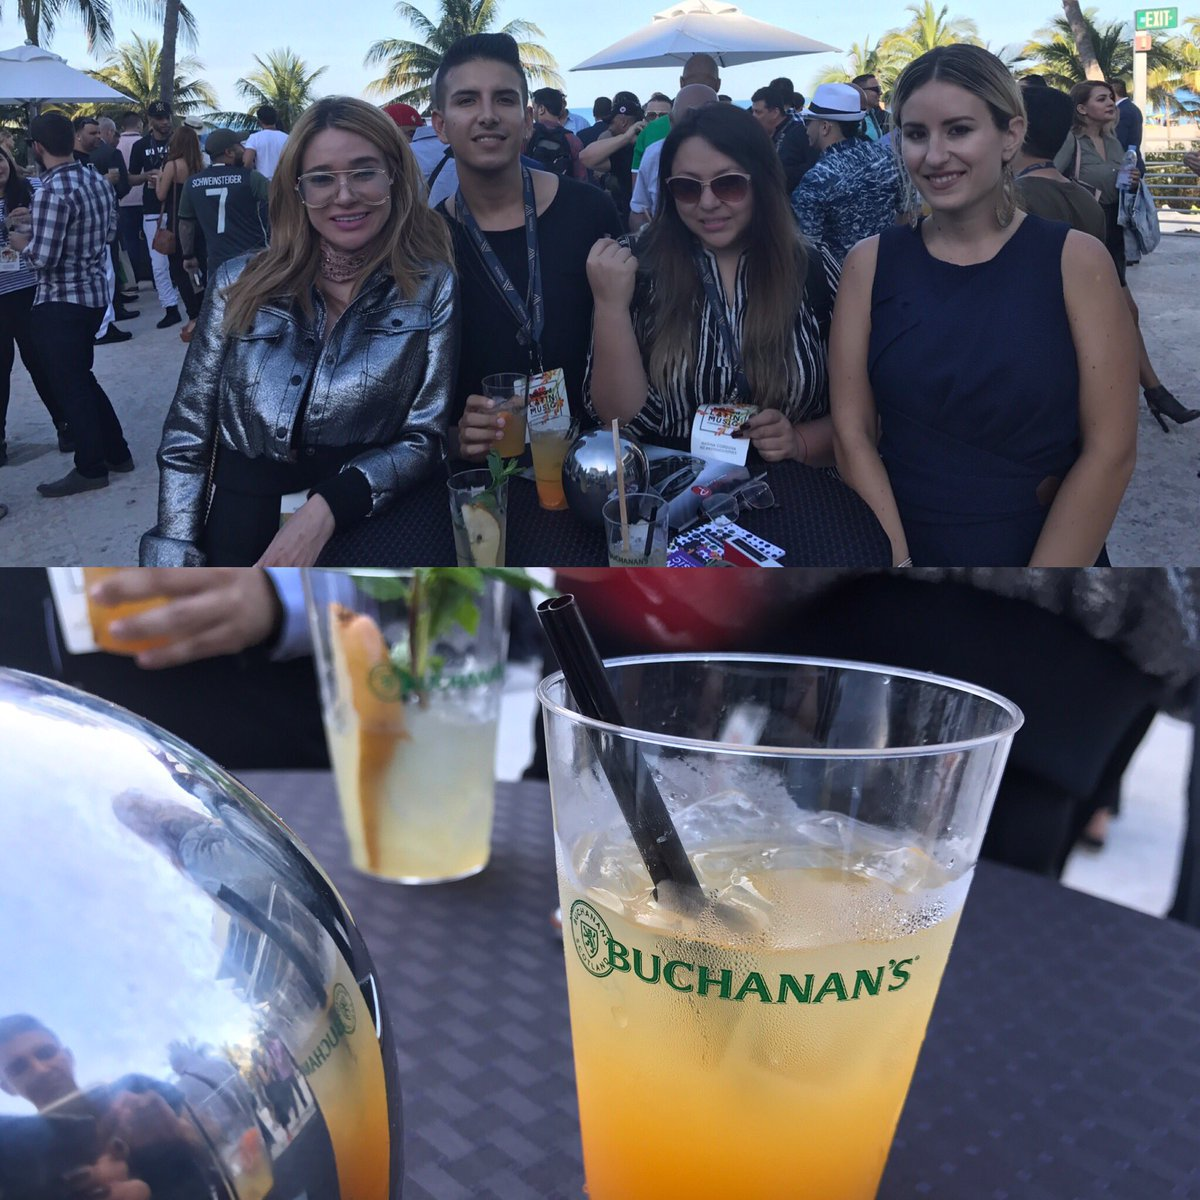 Cocktail #happyHour #buchanan&#39;s #Billboards2017 <br>http://pic.twitter.com/DOkYHy5fdG